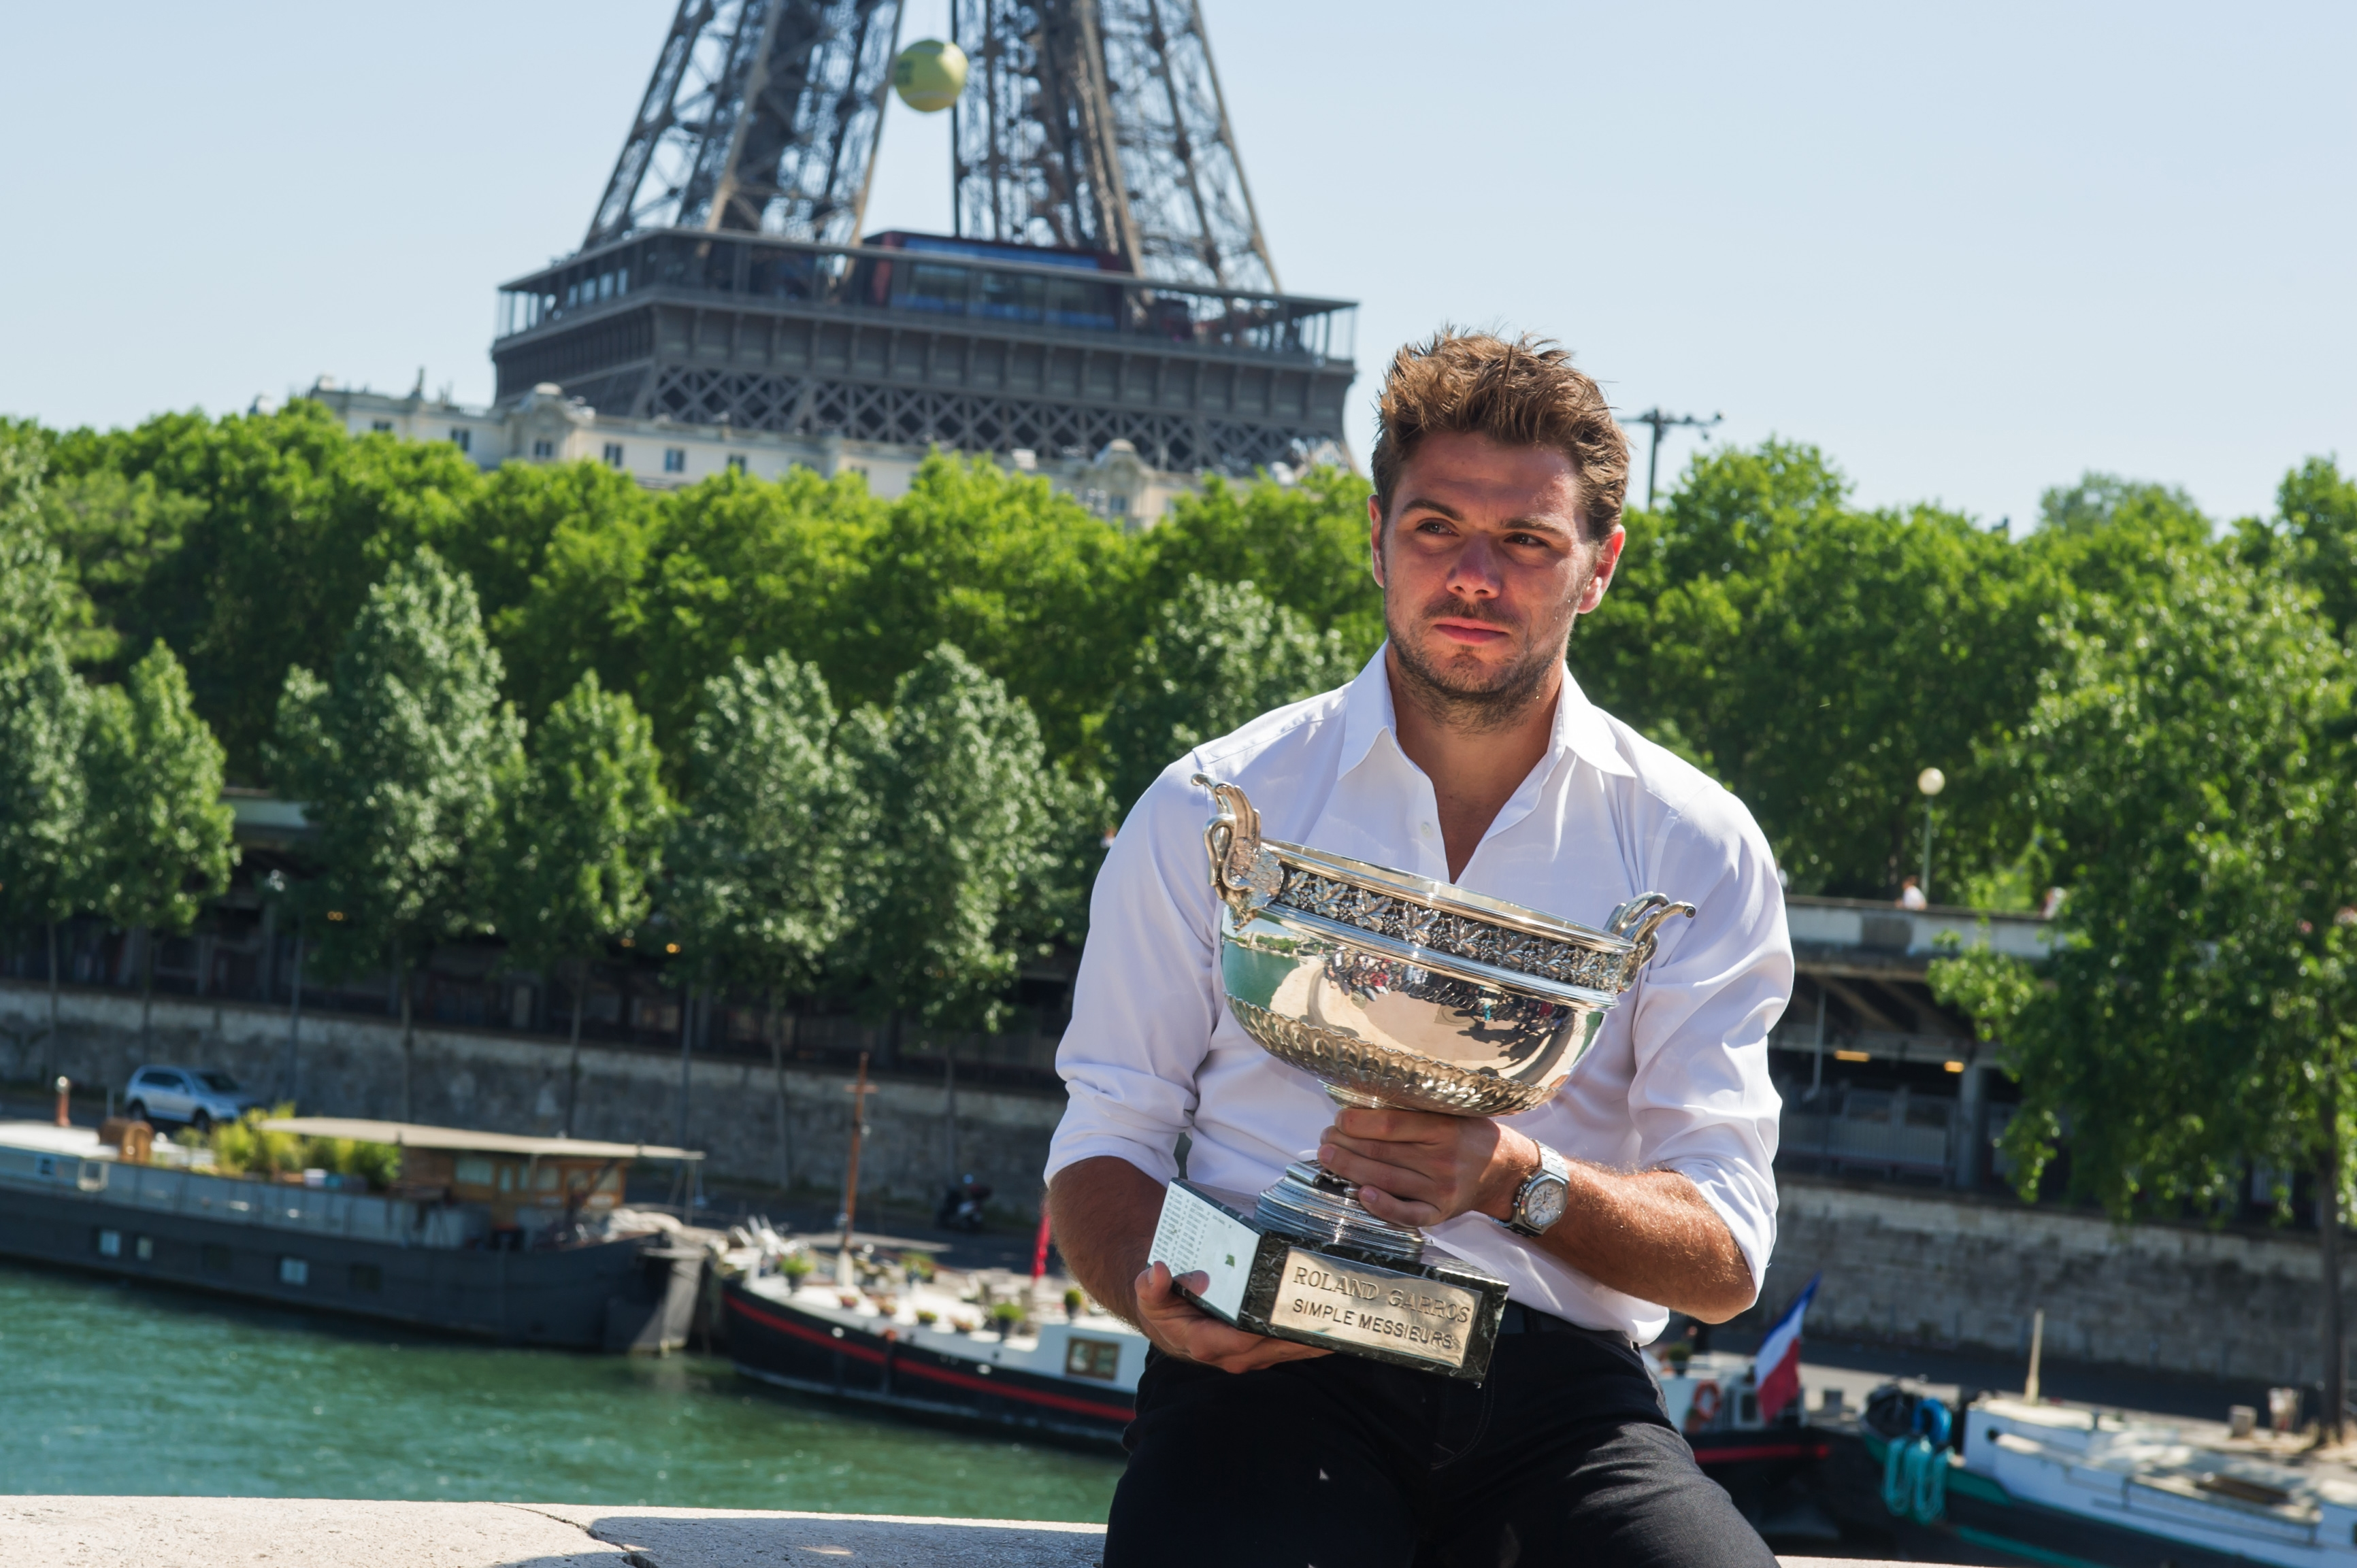 French Open Men's Singles champion Stan Wawrinka of Switzerland poses for a photo with his trophy in front of the Eiffel tower in Paris, France, Monday, June 8, 2015.  Wawrinka defeated Serbia's Novak Djokovic  in four sets, 4-6, 6-4, 6-3, 6-4, in the men